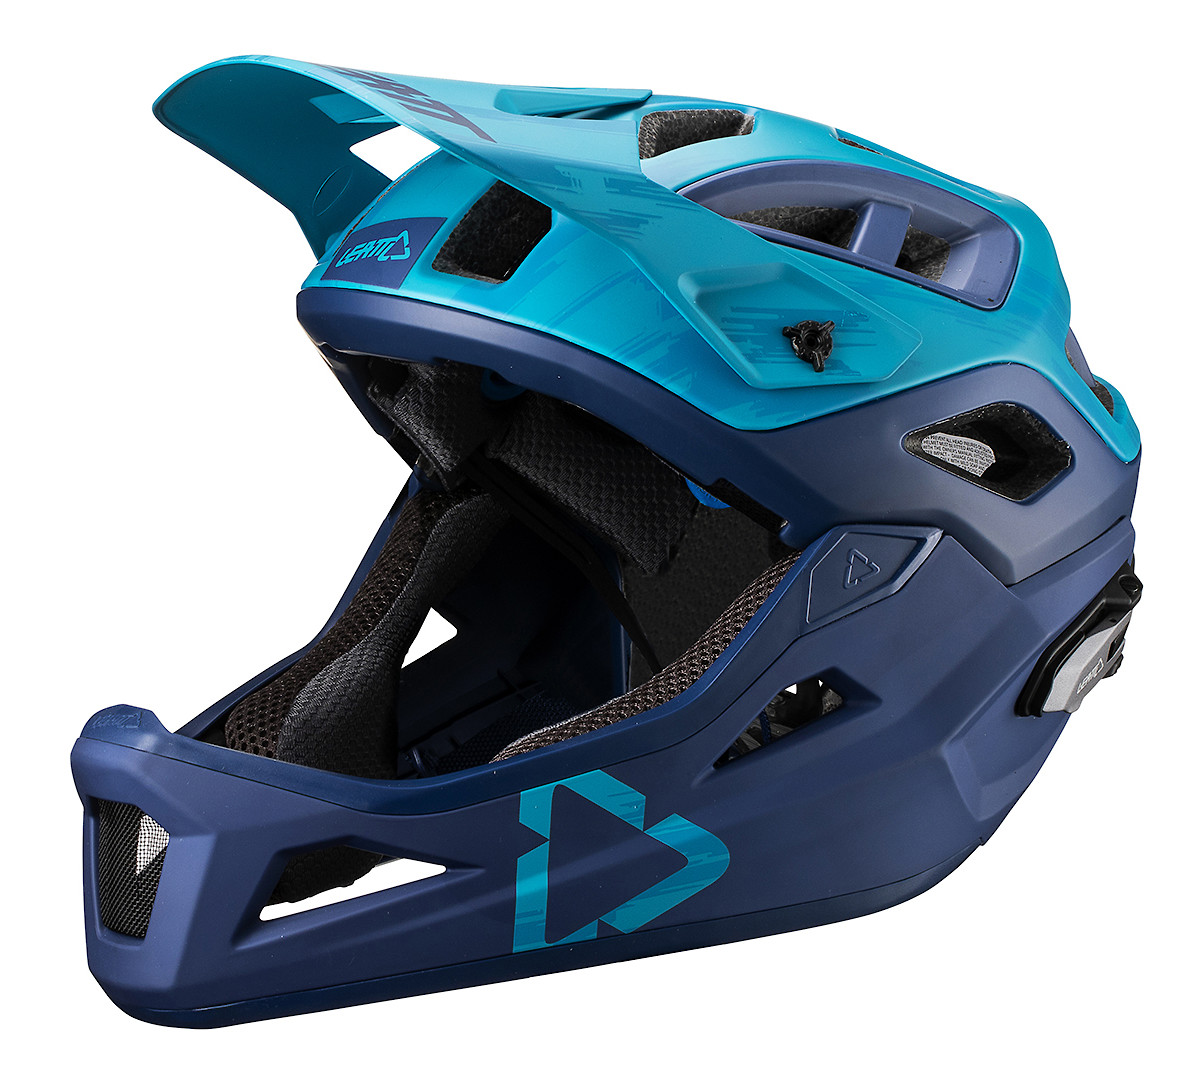 Leatt_Helmet_DBX3.0Enduro_ink_1019303610